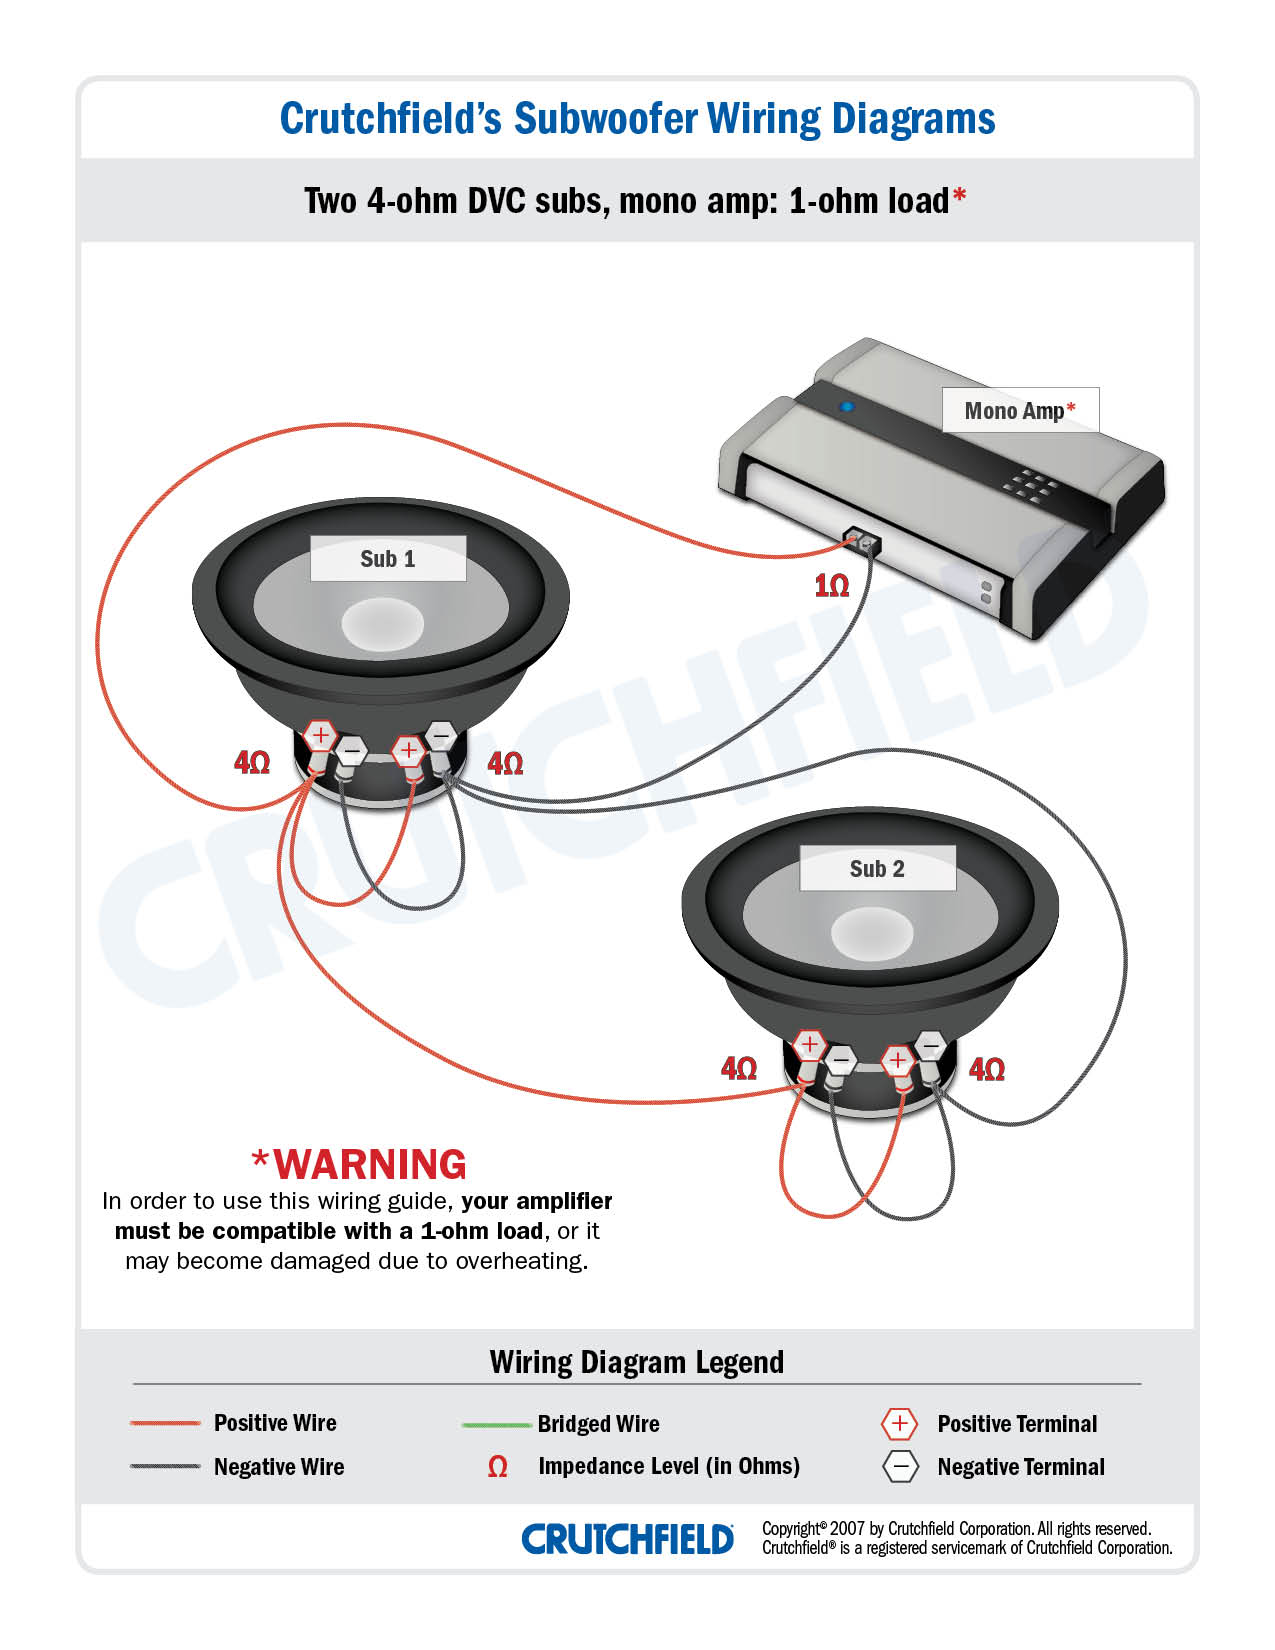 Subwoofer Wiring Diagrams How To Wire Your Subs Diagram Likewise Pioneer Premier Also In Case The 4 Ohm Scheme Is Only Safe Way Connect That Gear Together